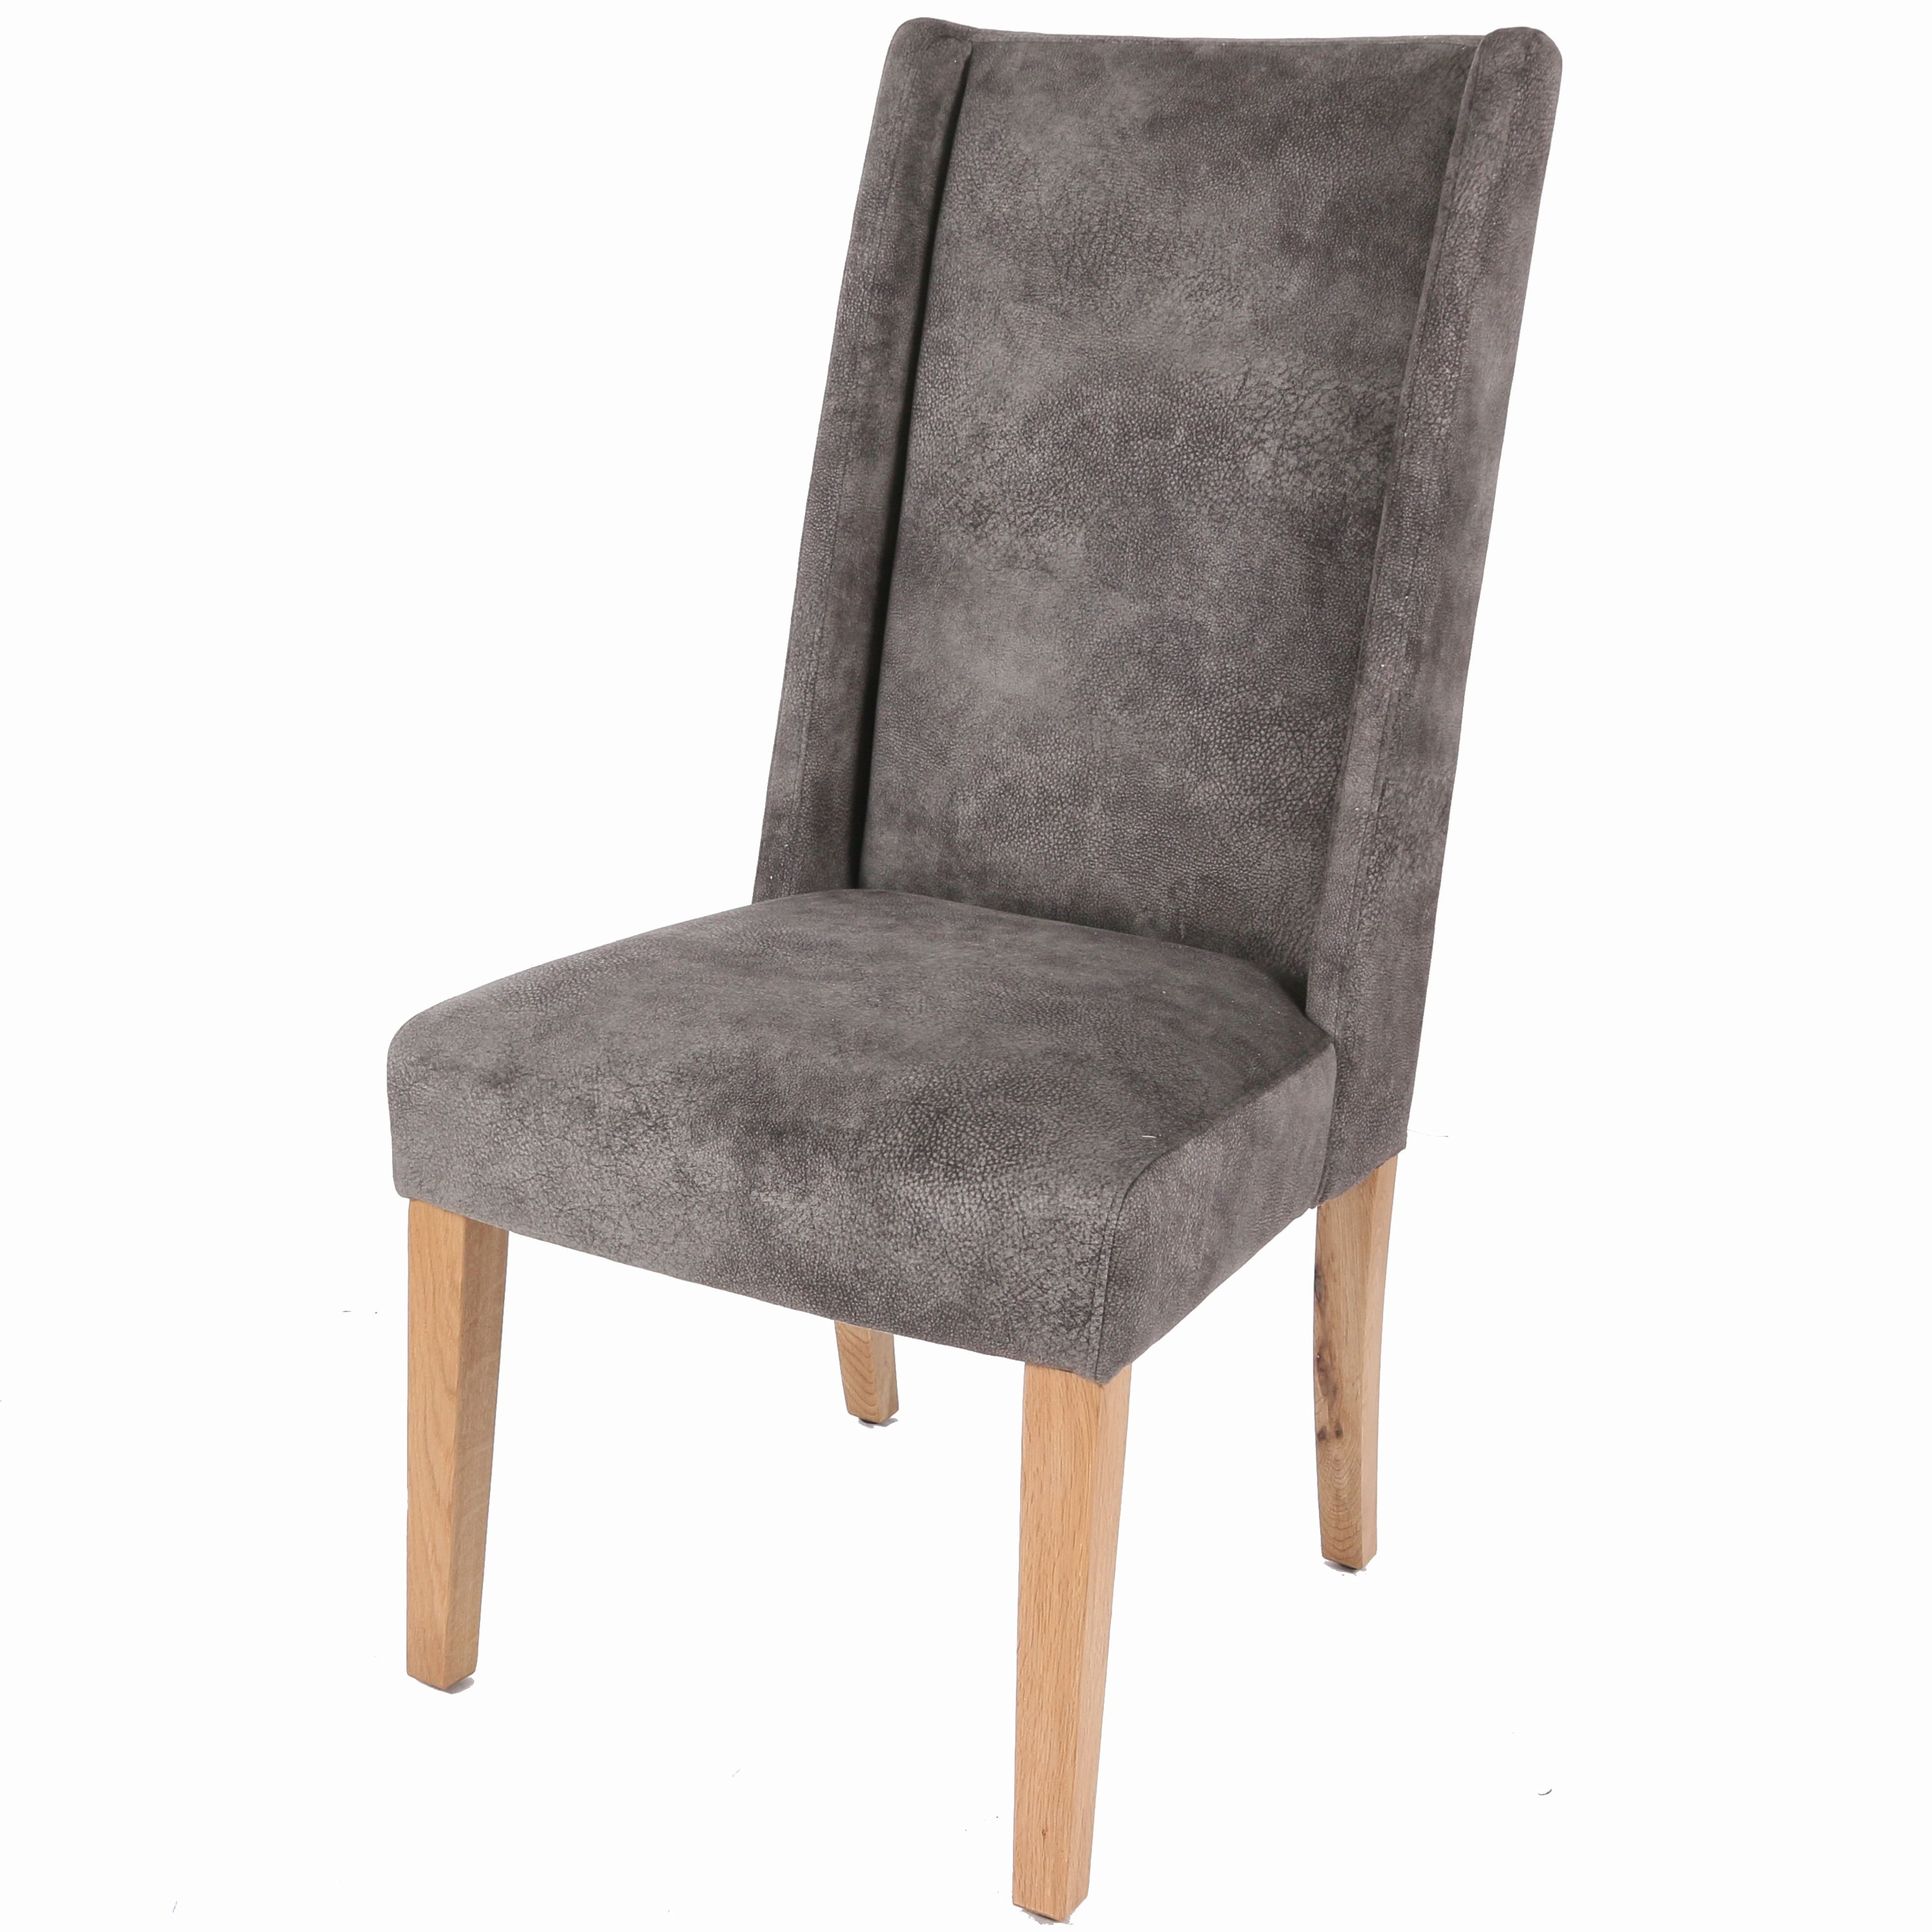 Lucas KD Fabric Chair Natural Wood Legs, Pewter Hide - NPD Furniture